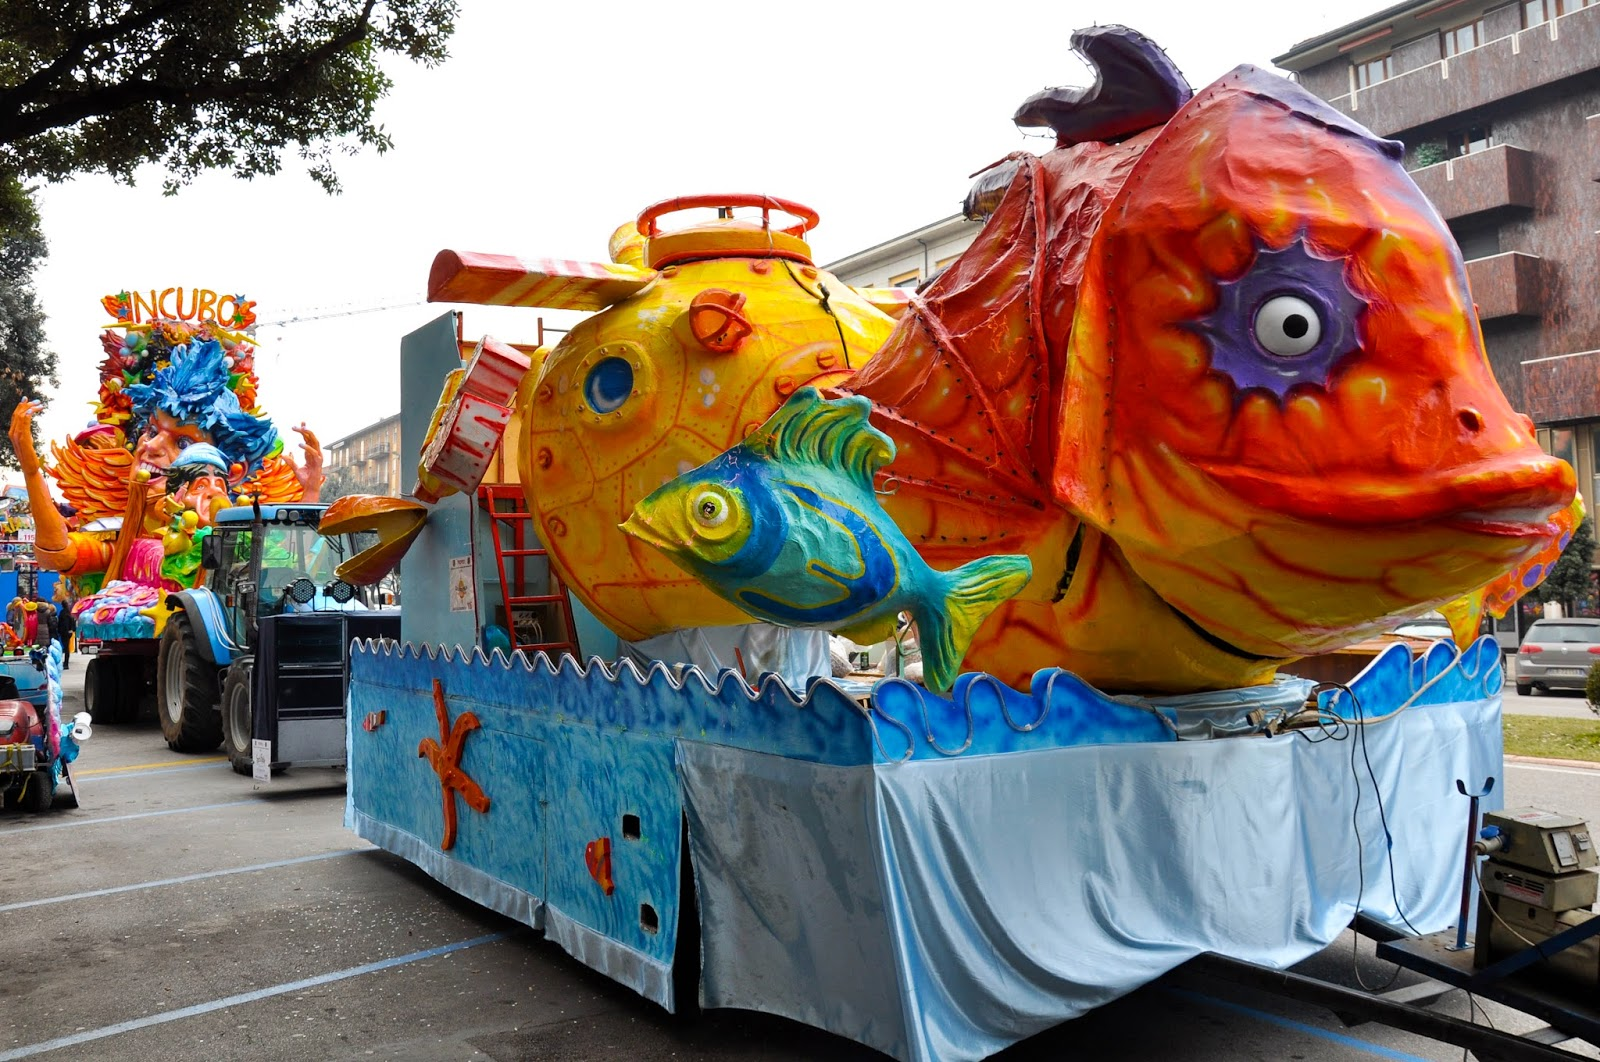 A sealife themed float waits for the parade at Verona Carnival to start